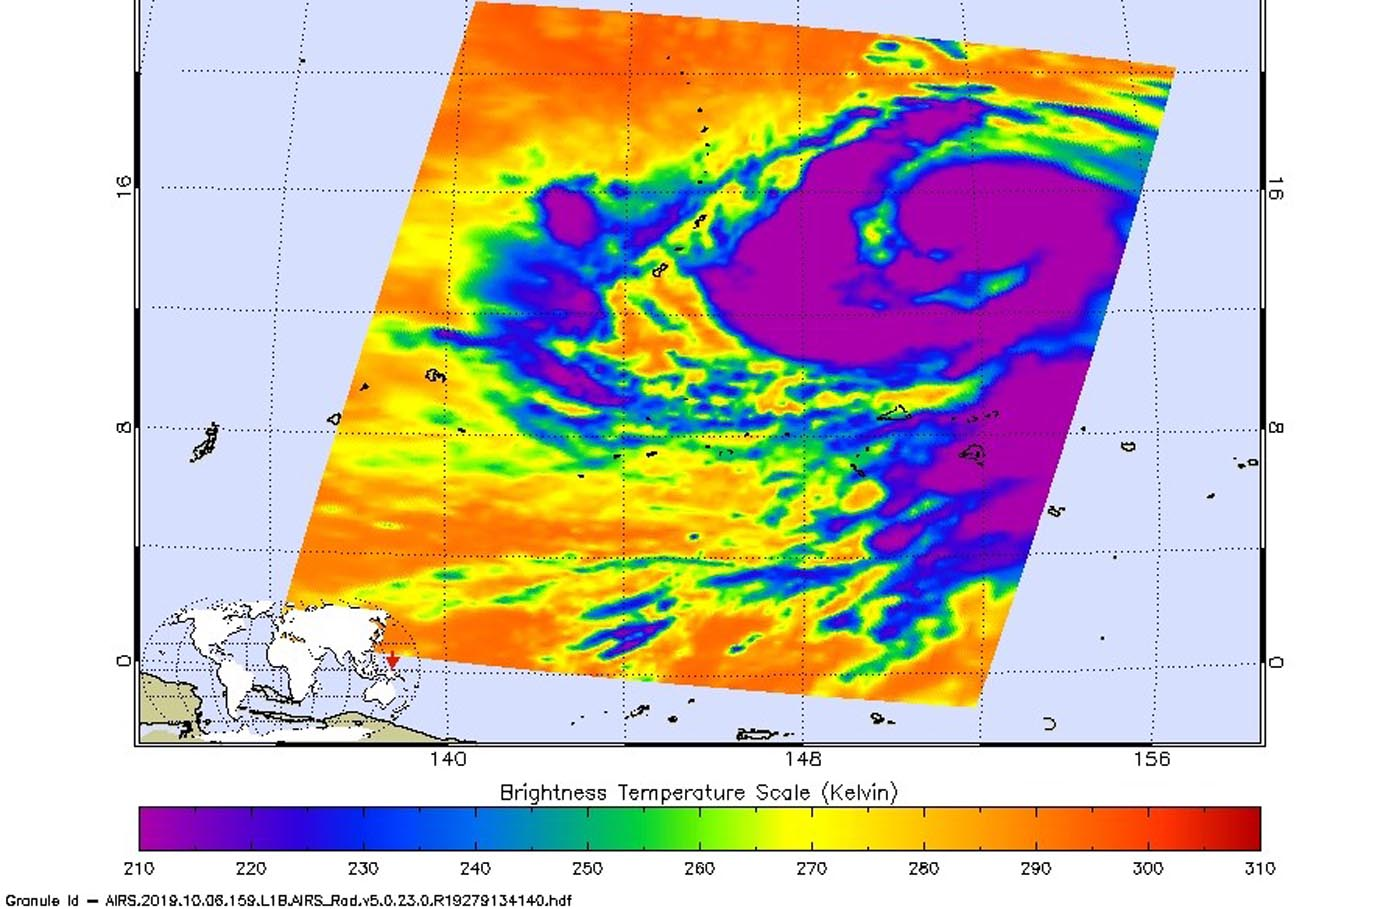 photo:NASA JPL/Heidar Thrastarson;desc: On Oct 6 at 3:53 p.m. EDT (1553 UTC) NASA's Aqua satellite analyzed Hagibis when it was a tropical storm using the Atmospheric Infrared Sounder or AIRS instrument. AIRS found coldest cloud top temperatures as cold as or colder than (purple) minus 63 degrees Fahrenheit (minus 53 degrees Celsius) around the center and in a thick band of thunderstorms east and west of center.